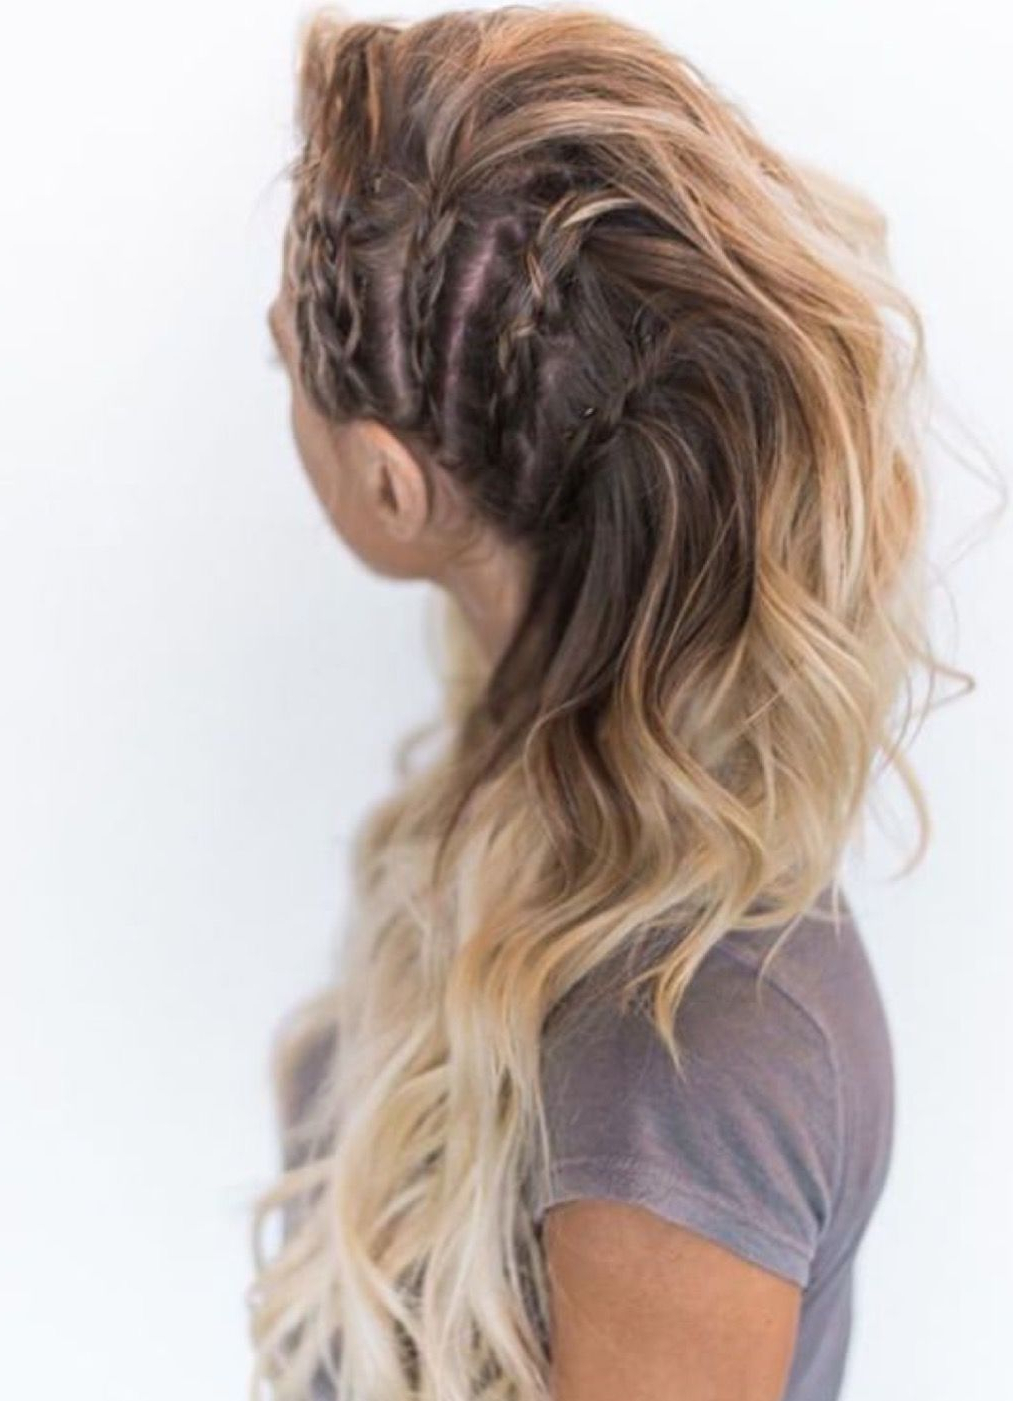 Avante Garde Inspired Side Braid Faux Mohawk With Curls All Falling In Recent Messy Braided Faux Hawk Hairstyles (View 7 of 20)